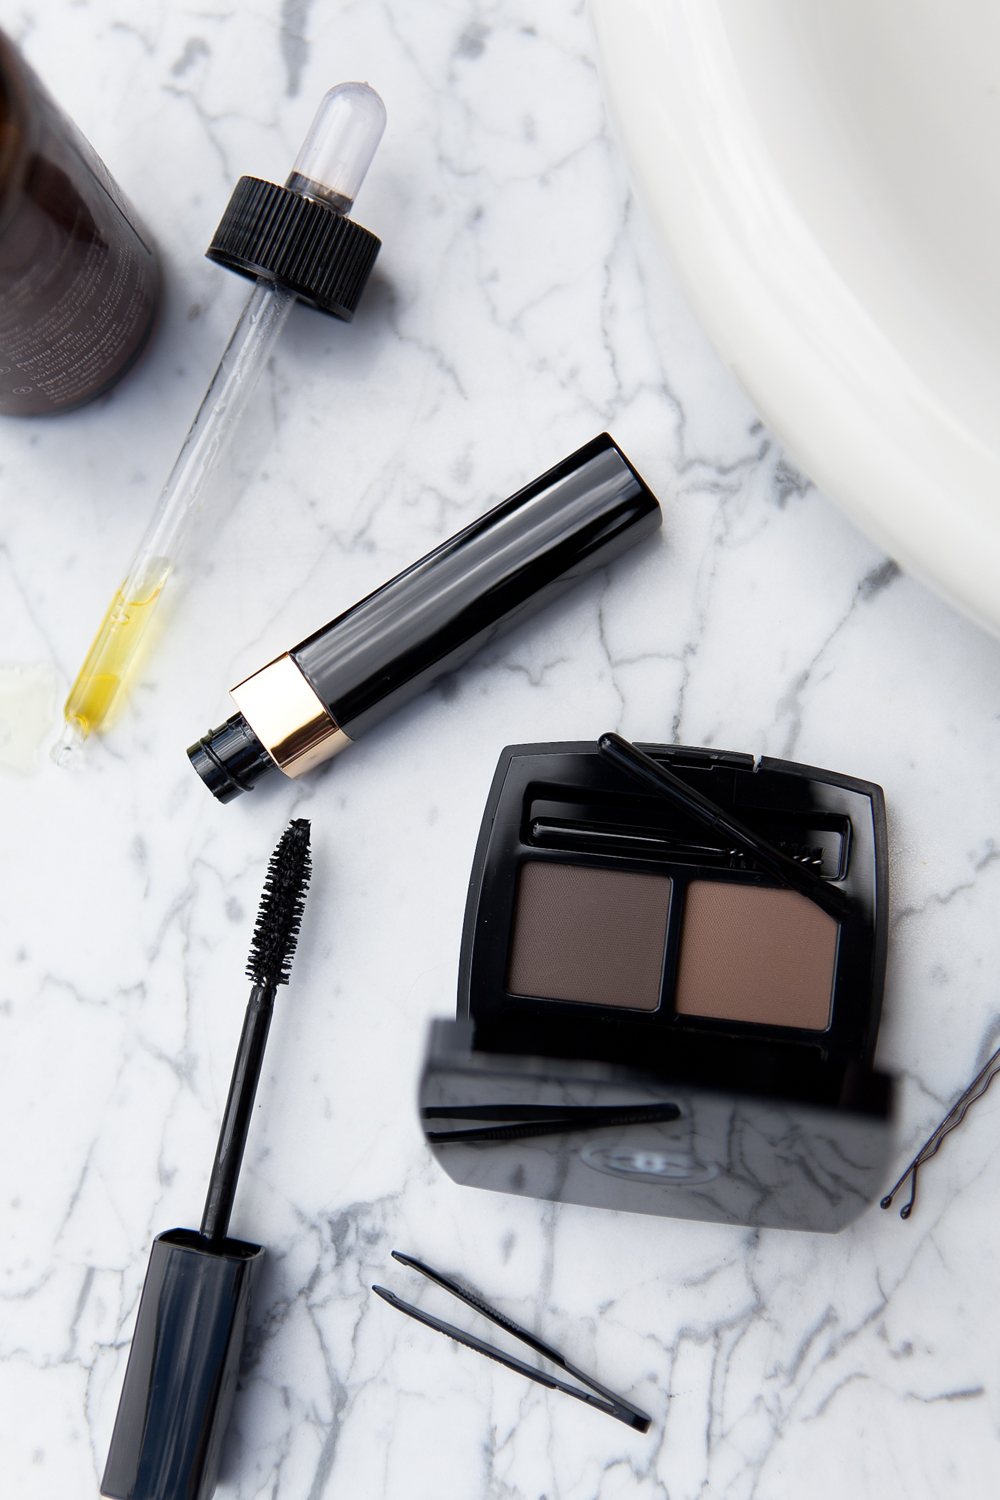 BEAUTY ESSENTIALS: EYEBROWS AND LASHES